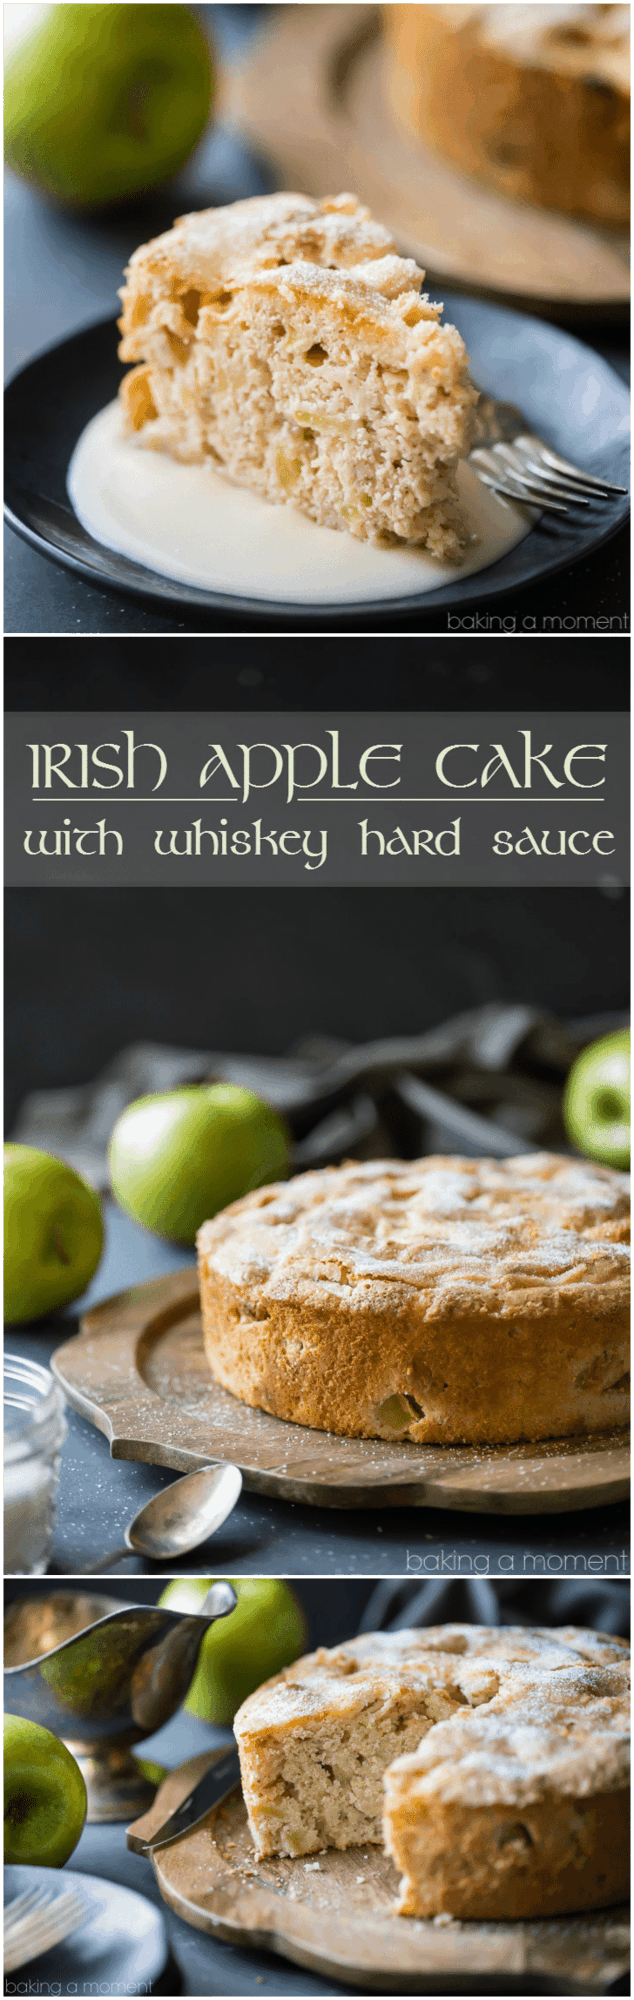 I made this Irish Apple Cake for St. Patrick's Day, but honestly it was so good I'd eat it any time of year! There was just a hint of cinnamon, allowing the tart apple flavor to really shine. The whiskey hard sauce was the perfect creamy compliment! 